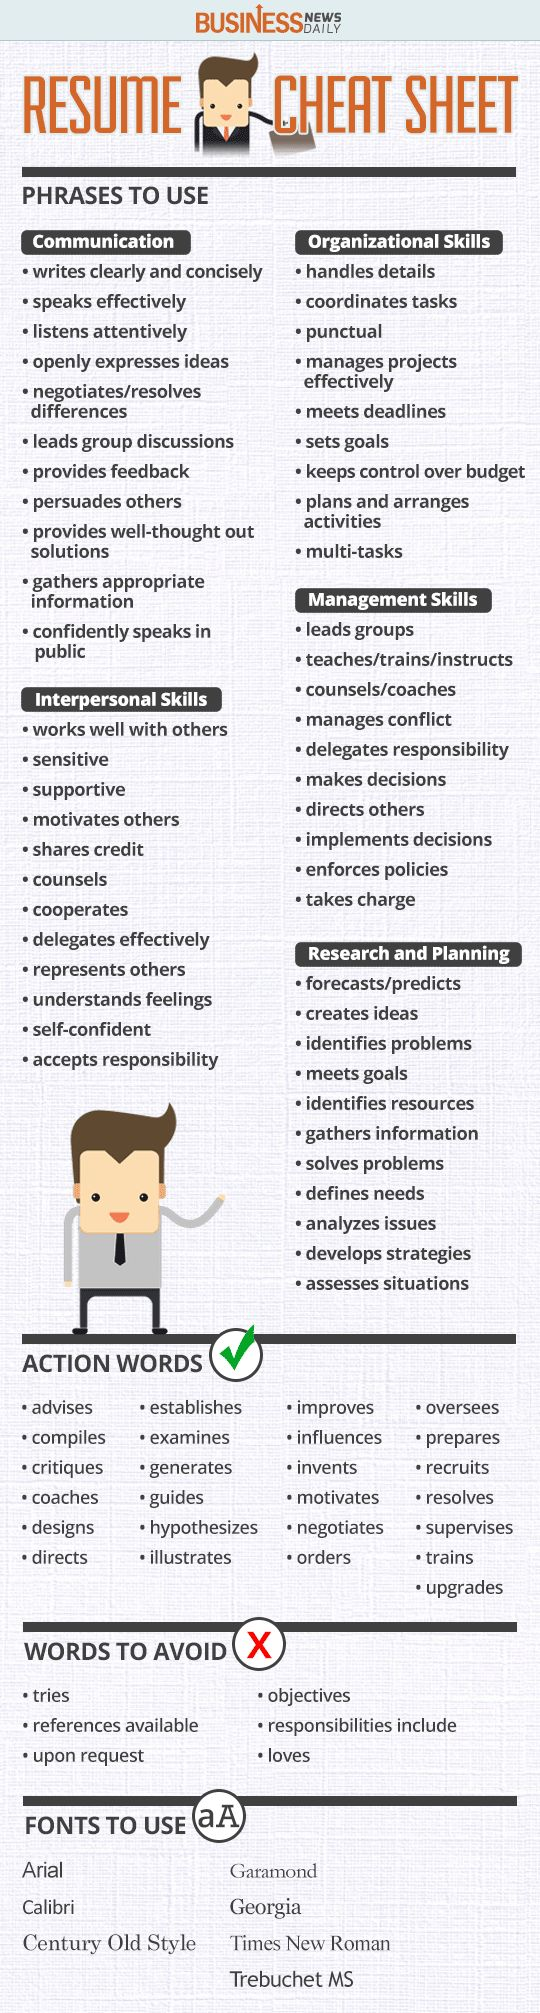 Opposenewapstandardsus  Terrific  Ideas About Resume On Pinterest  Cv Format Resume Cv And  With Exciting Resume Cheat Sheet Infographic Andrews Almost Done With A Complete Unit On Employment Which With Endearing Nice Resume Templates Also Database Developer Resume In Addition Paralegal Resume Objective And Recent Grad Resume As Well As Does Resume Have An Accent Additionally Key Skills On Resume From Pinterestcom With Opposenewapstandardsus  Exciting  Ideas About Resume On Pinterest  Cv Format Resume Cv And  With Endearing Resume Cheat Sheet Infographic Andrews Almost Done With A Complete Unit On Employment Which And Terrific Nice Resume Templates Also Database Developer Resume In Addition Paralegal Resume Objective From Pinterestcom